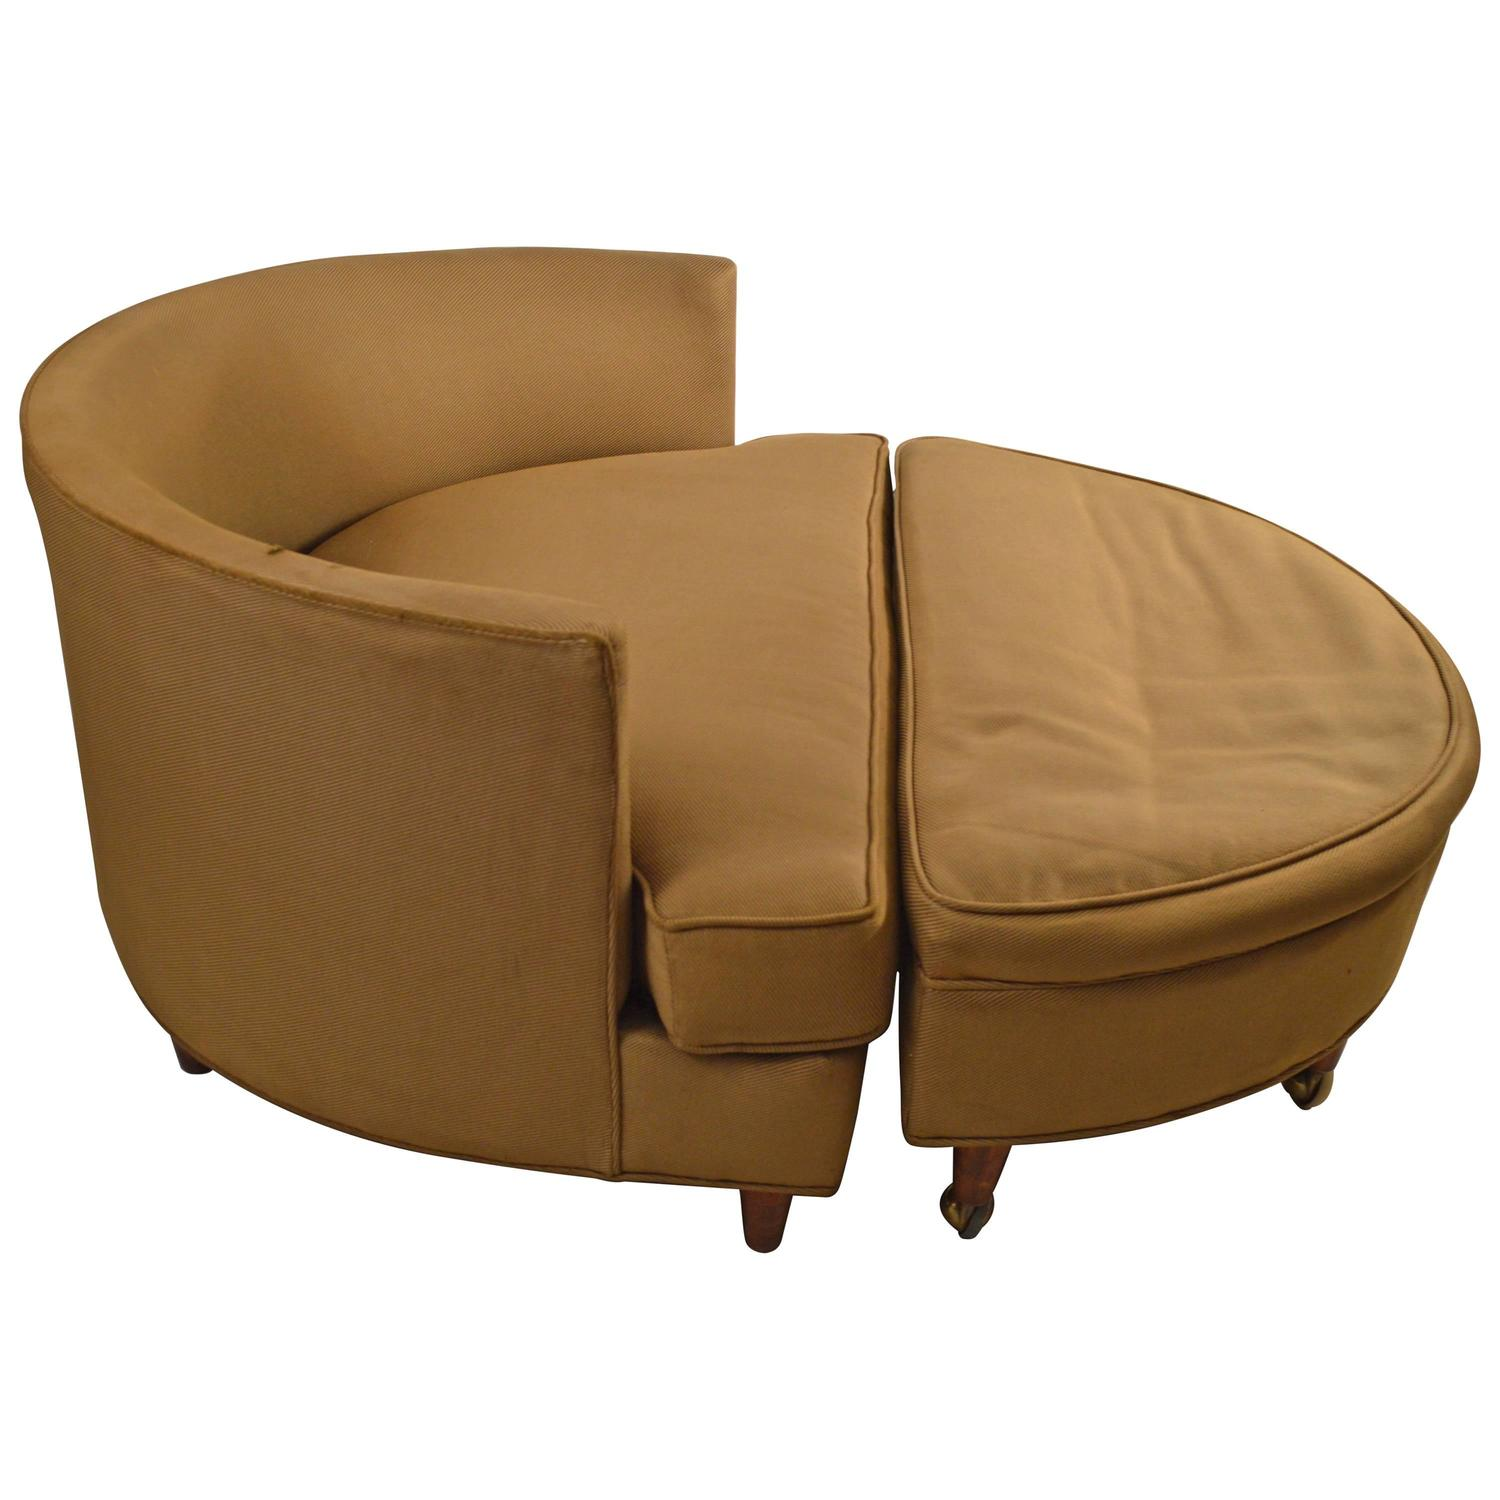 Big chair and ottoman adrian big chair and ottoman for Big chairs for sale